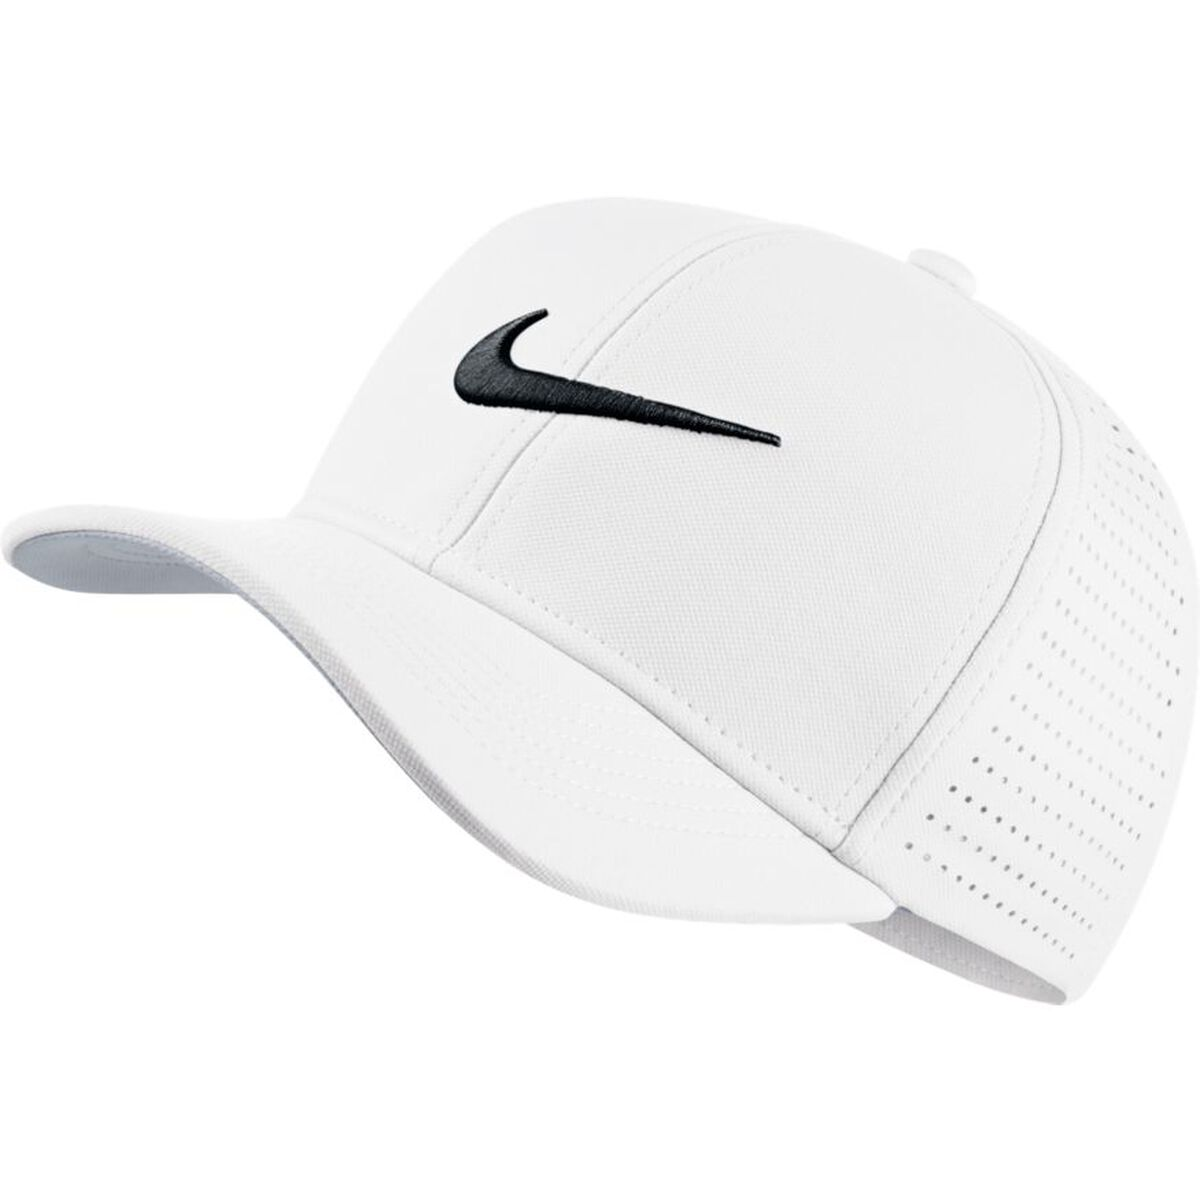 441b24063f9875 Nike AeroBill Classic99 Golf Hat | PGA TOUR Superstore